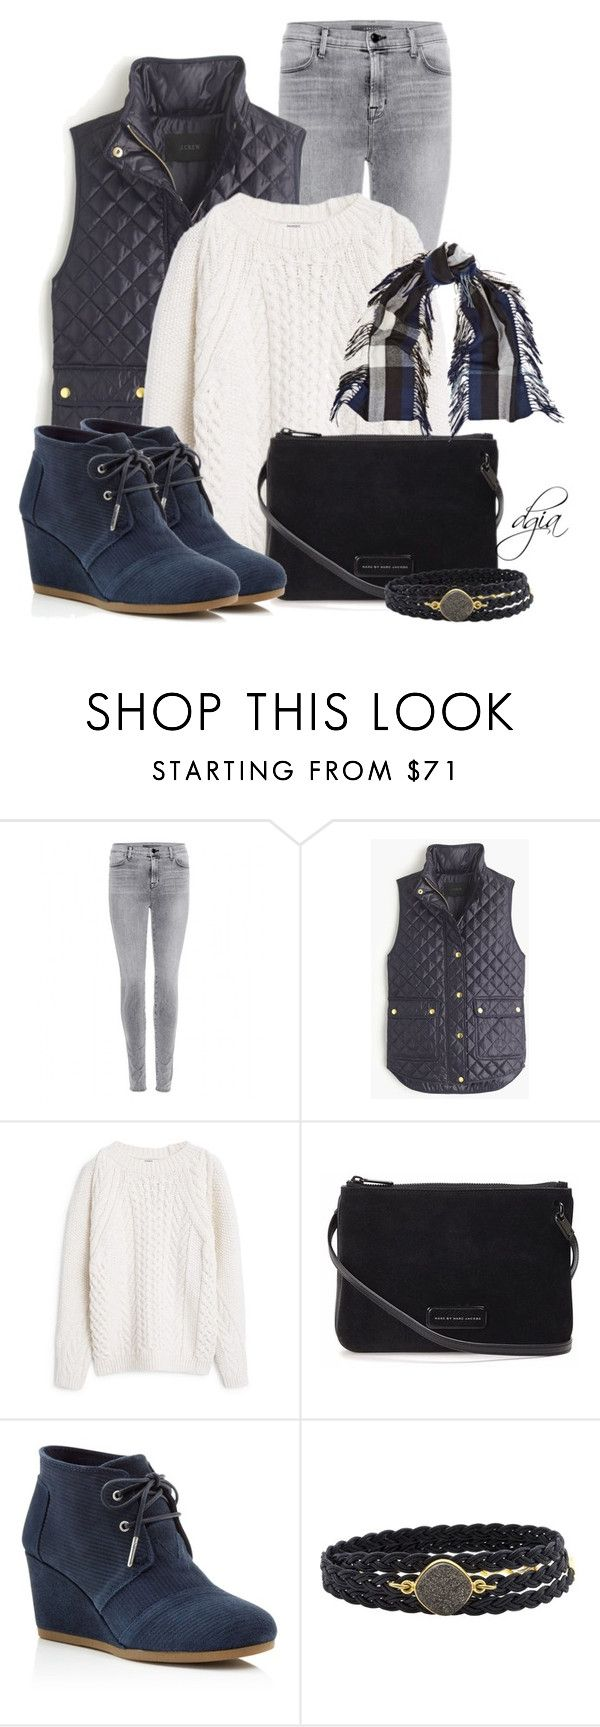 """""""Toms Wedge Booties"""" by dgia ❤ liked on Polyvore featuring J Brand, J.Crew, MANGO, Marc by Marc Jacobs, TOMS, Alexandra Beth Designs, Burberry, women's clothing, women's fashion and women"""